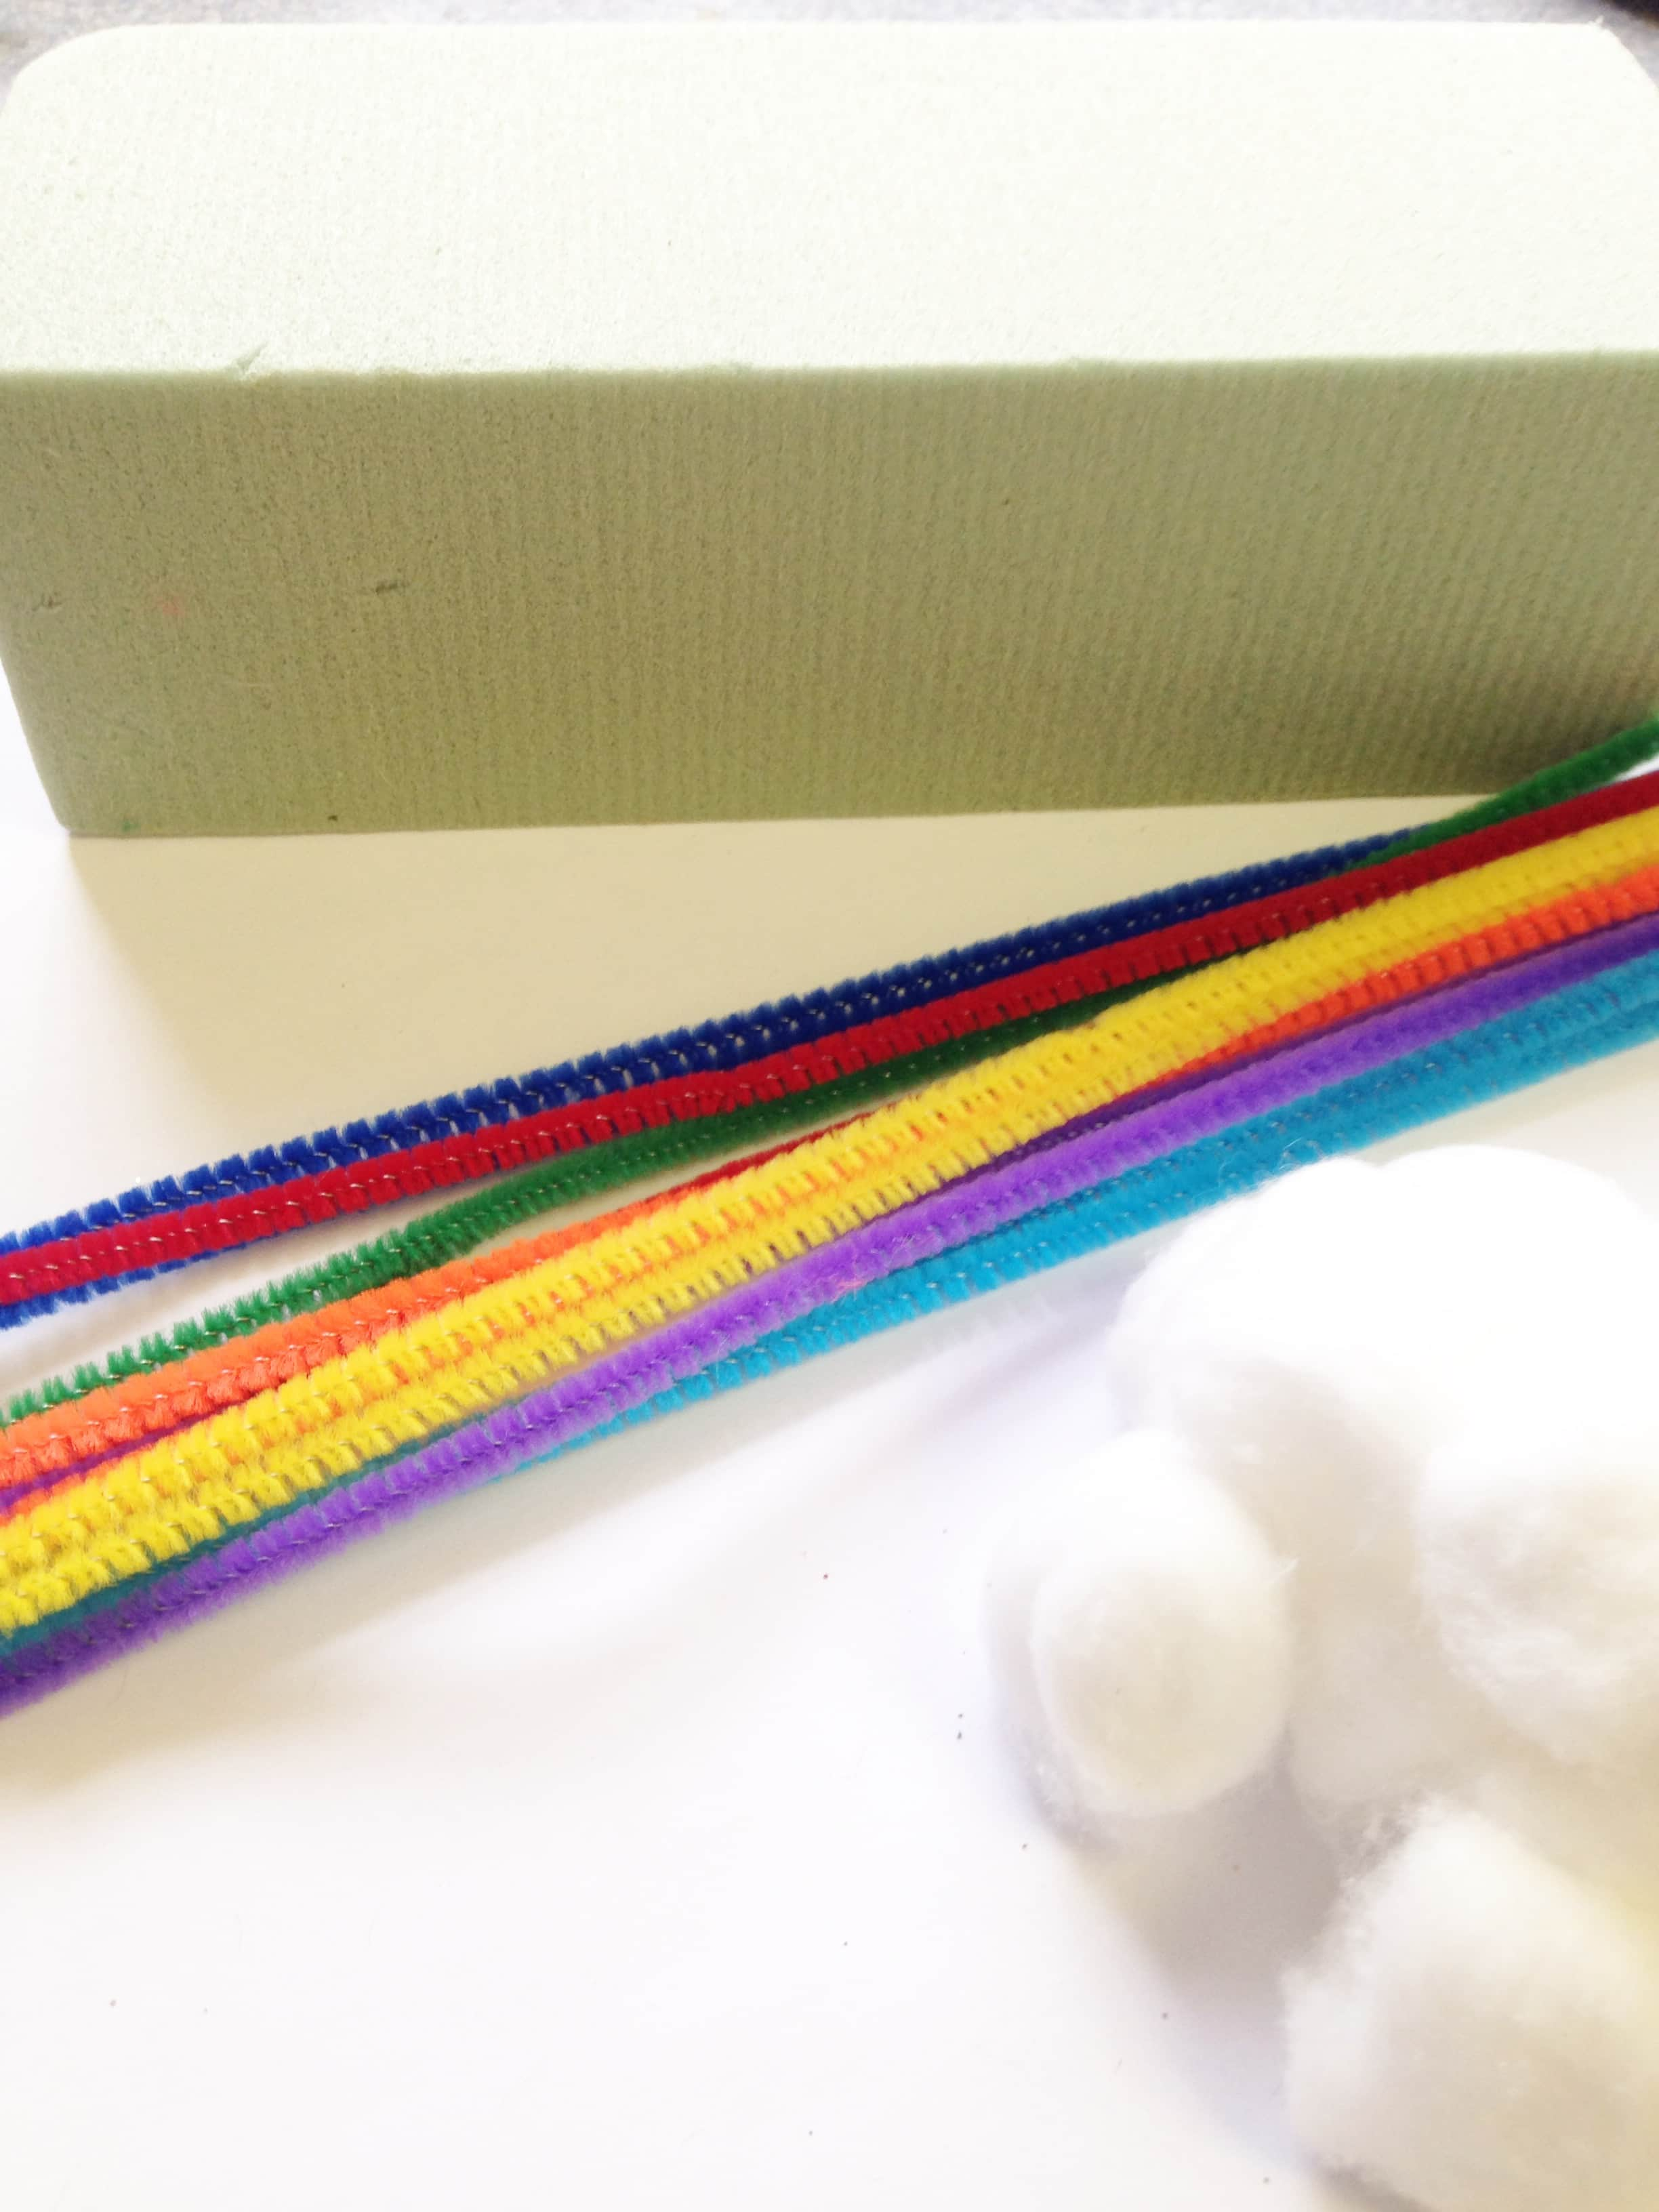 Build Your Own Rainbow Kit for Kids materials